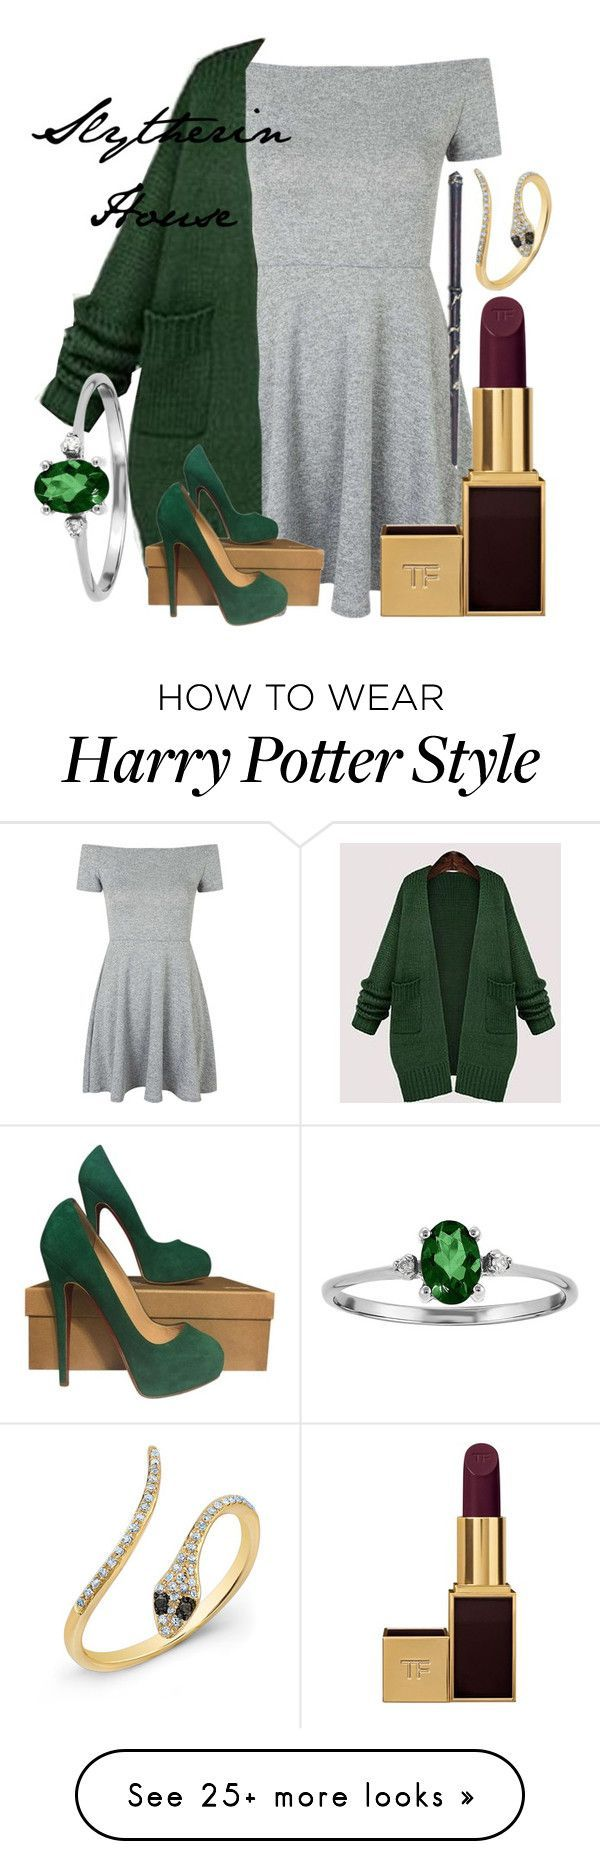 """""""Slytherin House"""" by emilylaura27 on Polyvore featuring moda, Topshop, Jiuni, Christian Louboutin, Tom Ford, women's clothing, women, female, woman y misses"""